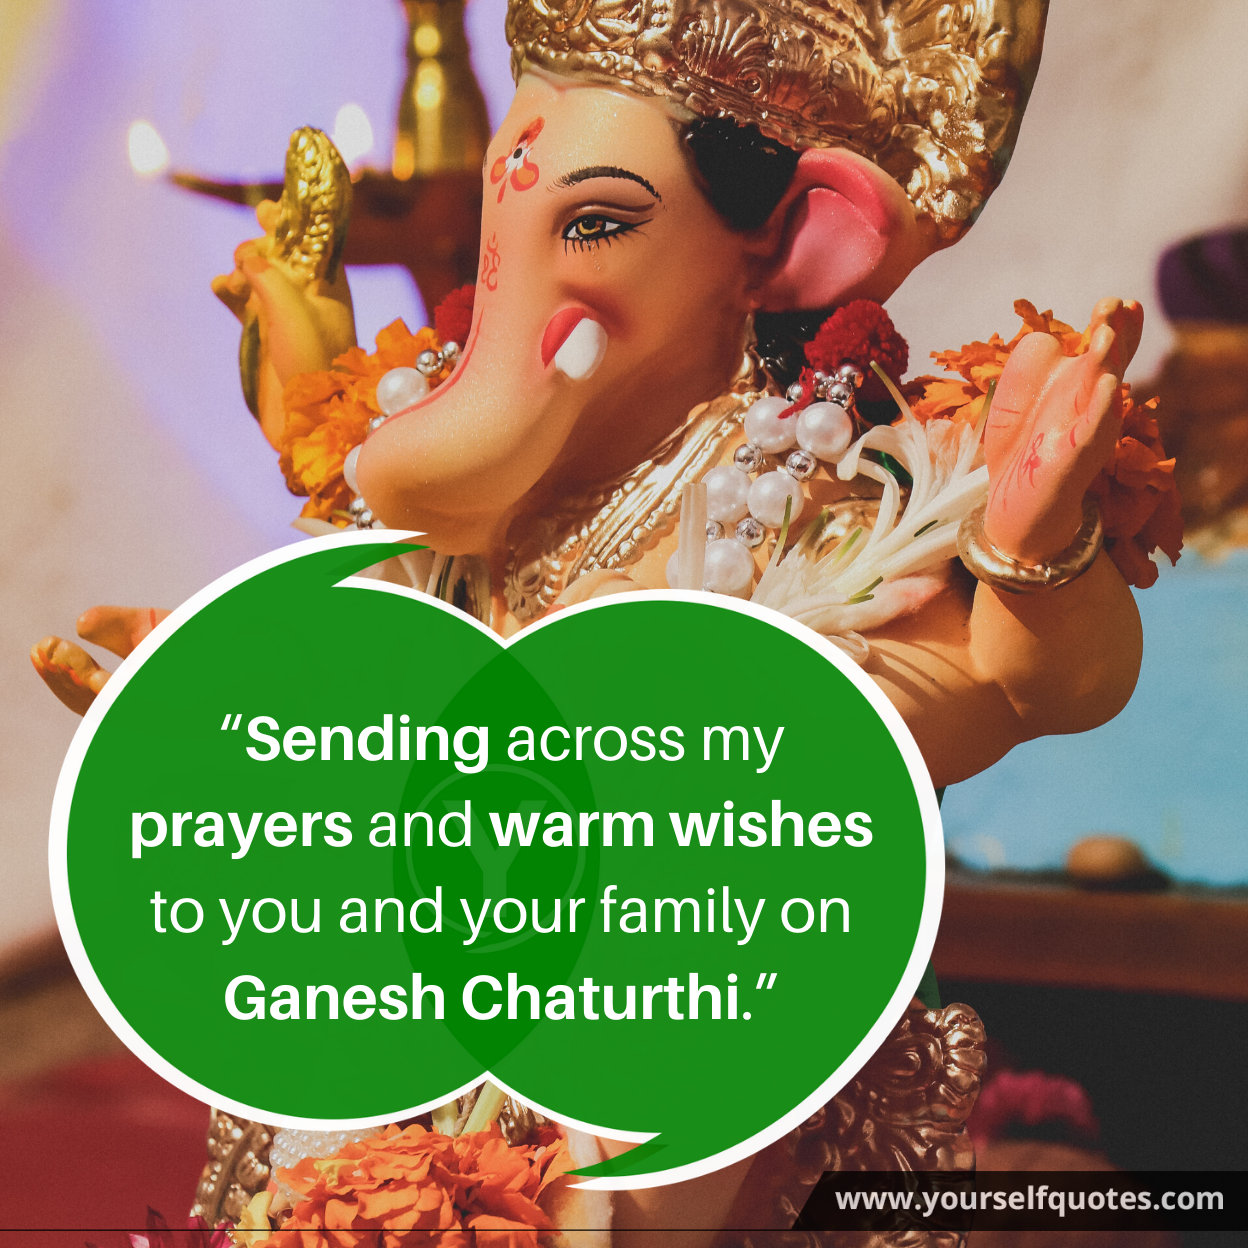 Best Ganesh Chaturthi Quotes